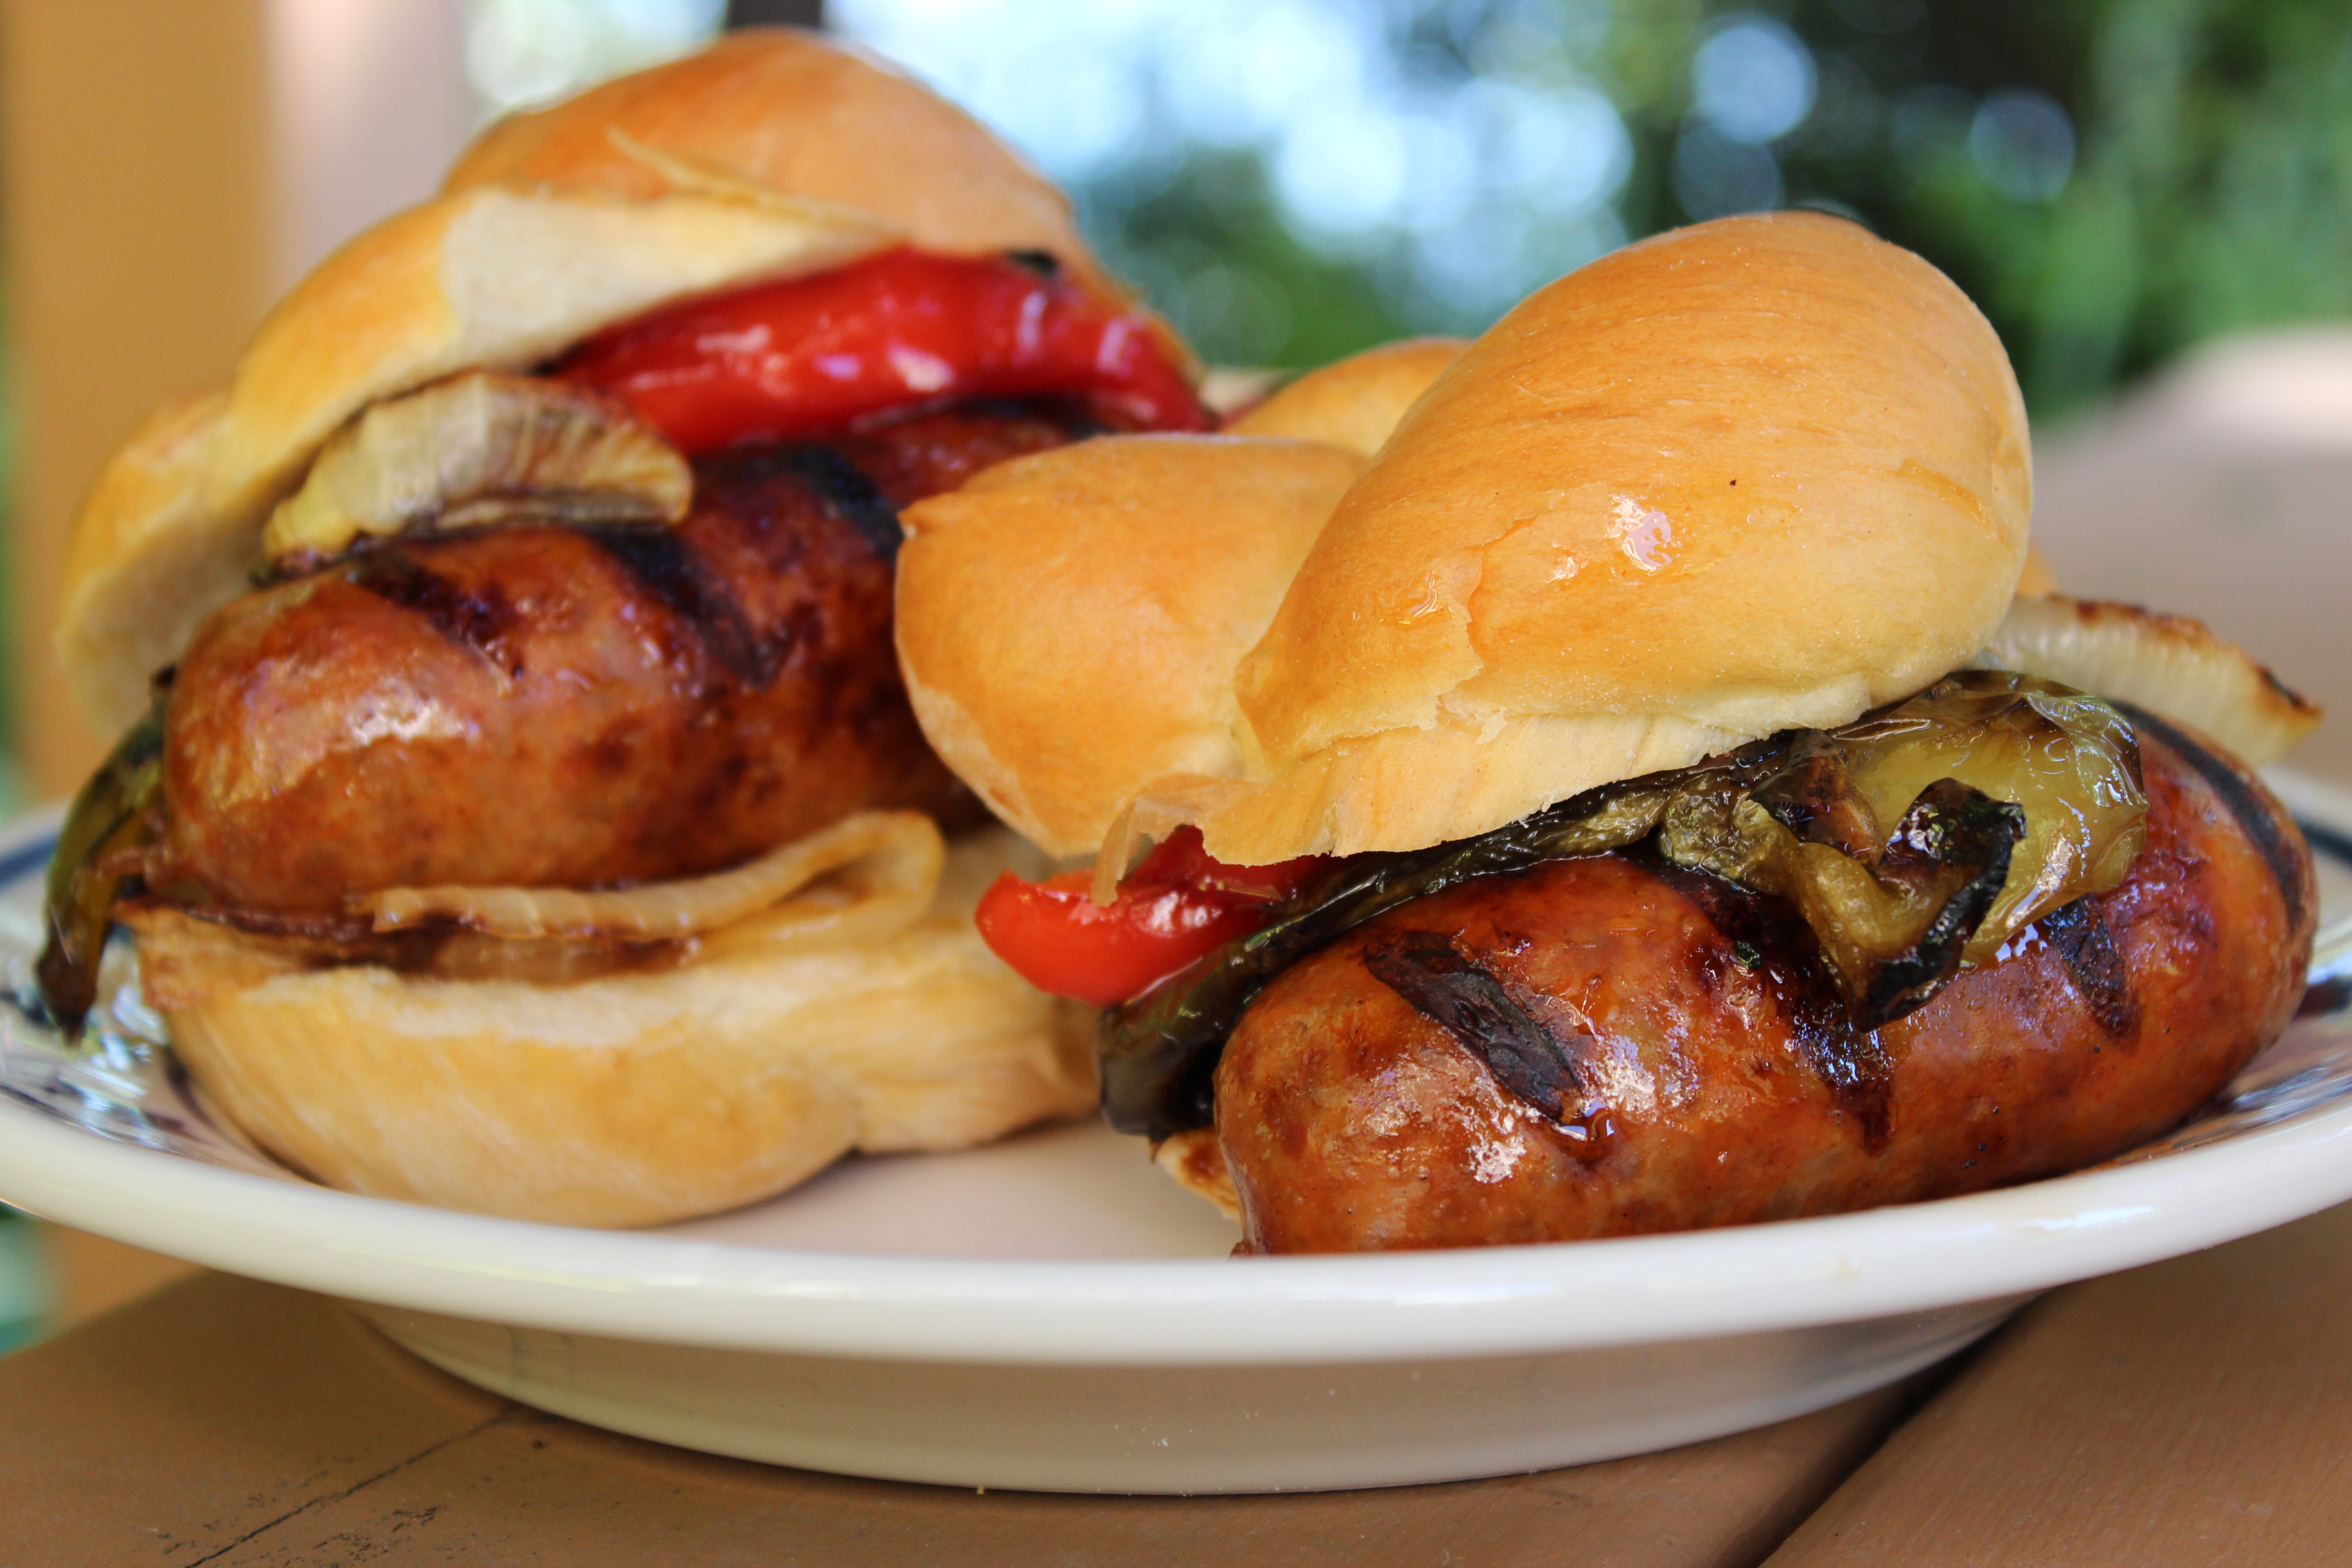 grilled Italian sausage with sweet and sour peppers and onions